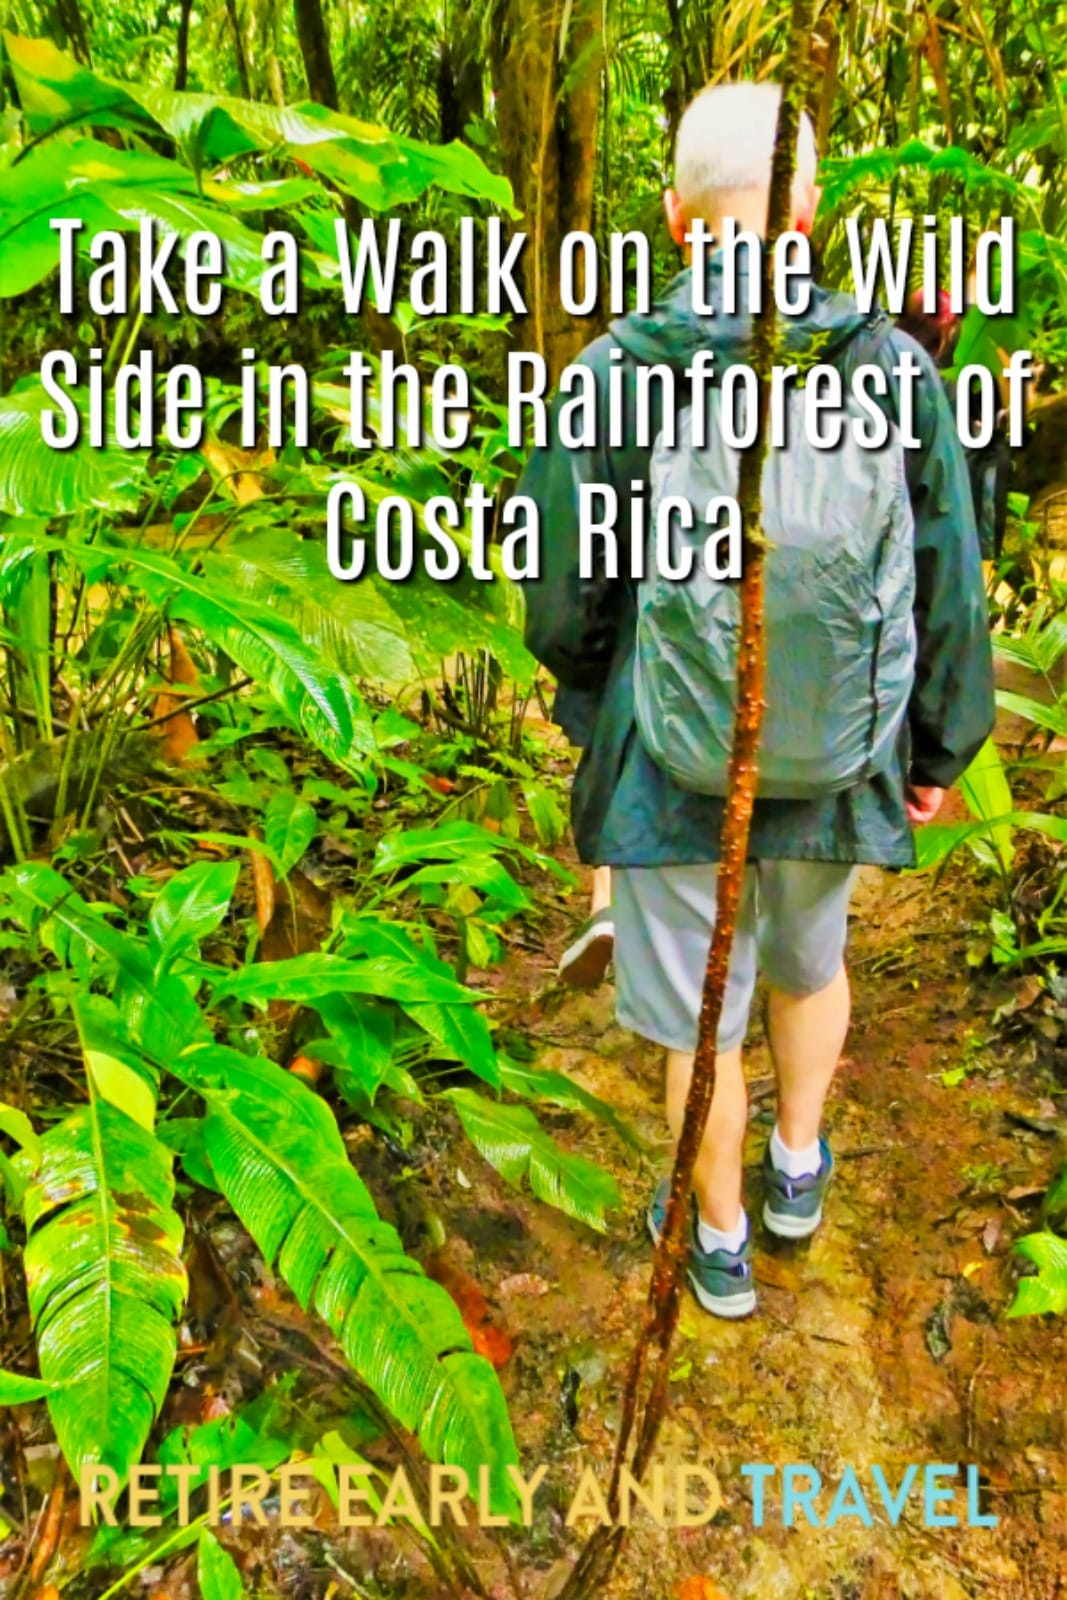 Take a Walk on the Wild Side in the Rainforest of Costa Rica